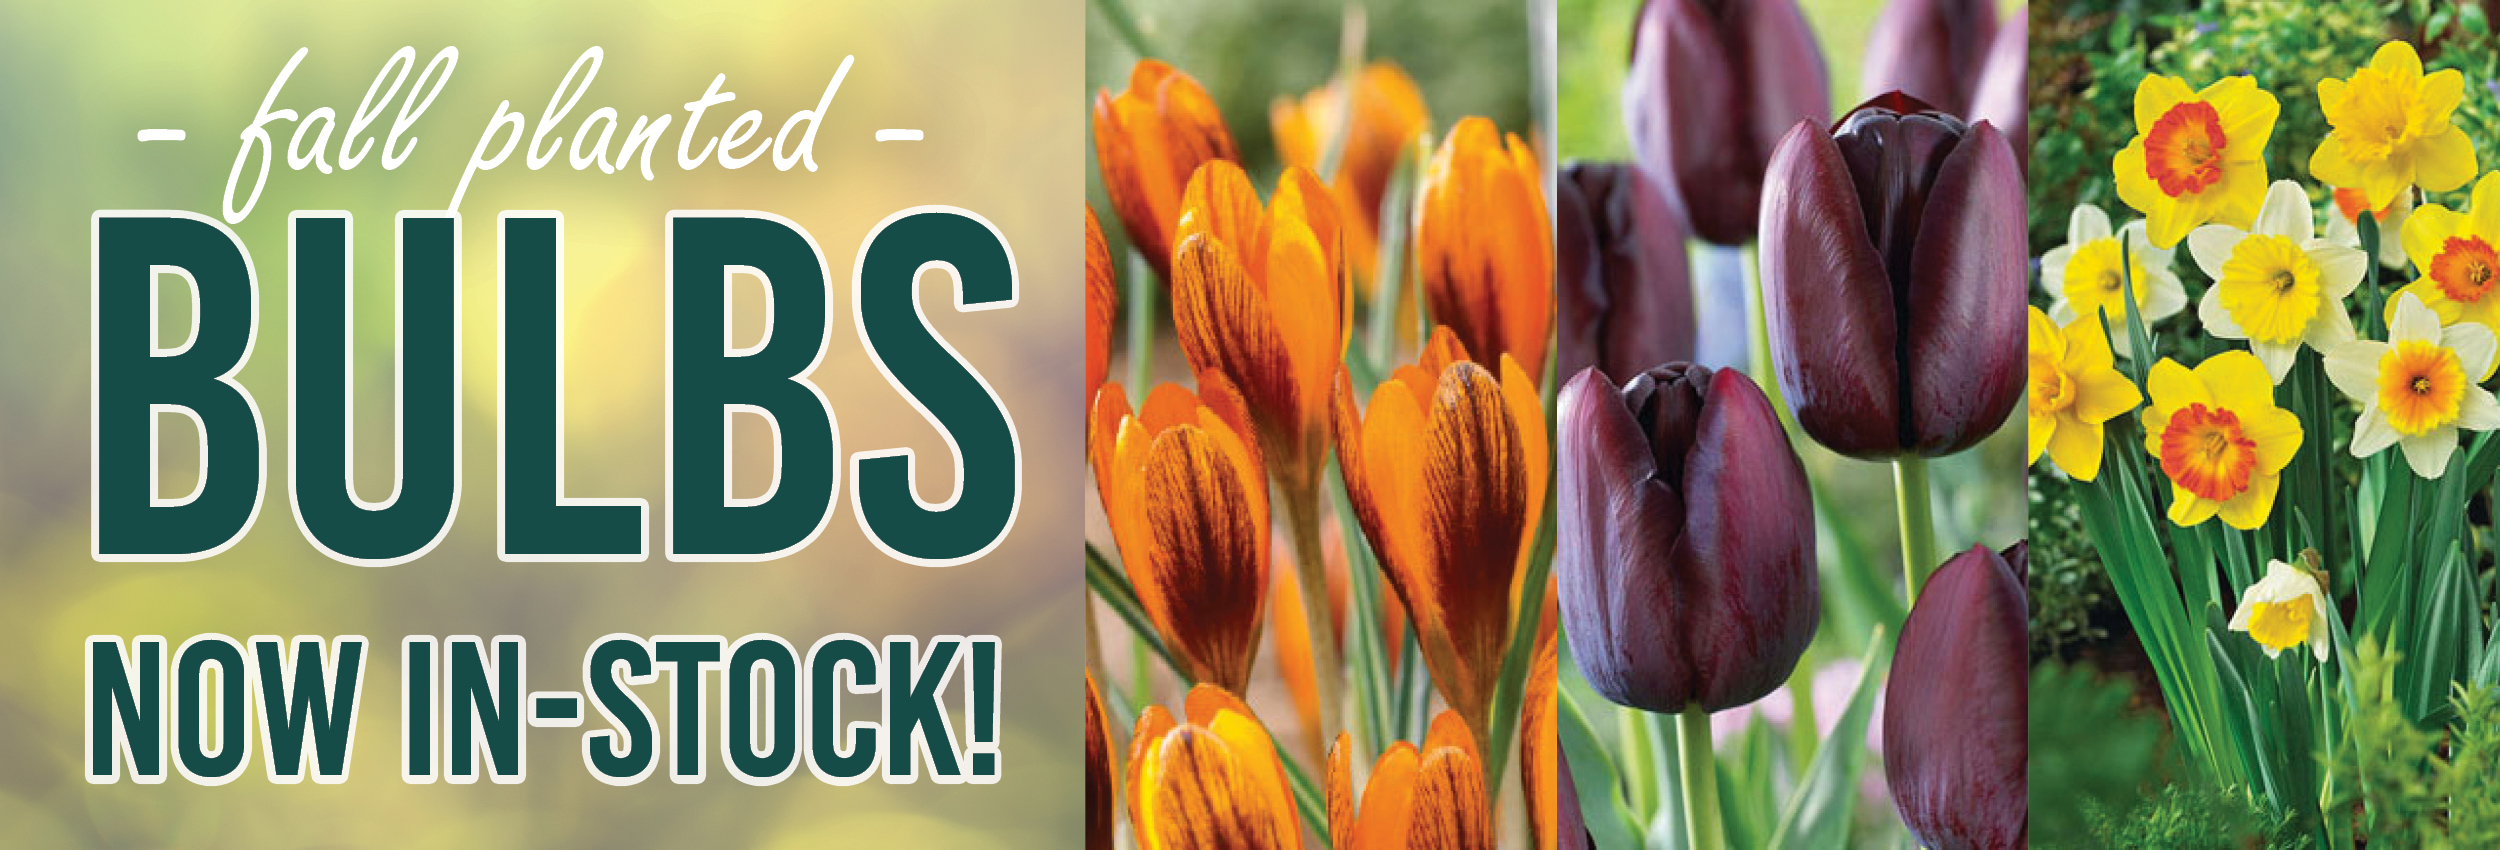 Fall Planted Bulbs Now In Stock